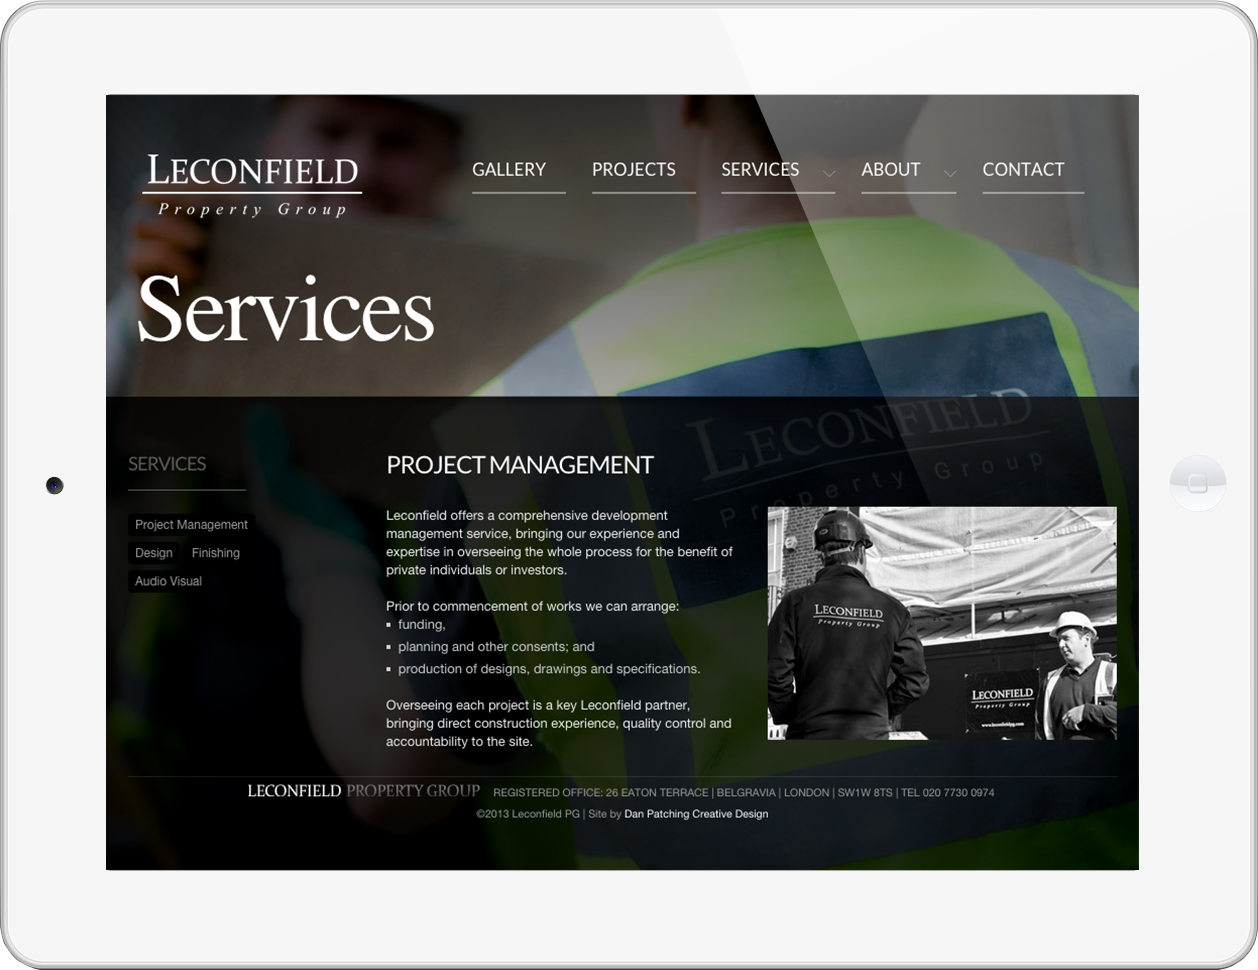 Leconfield Property Group